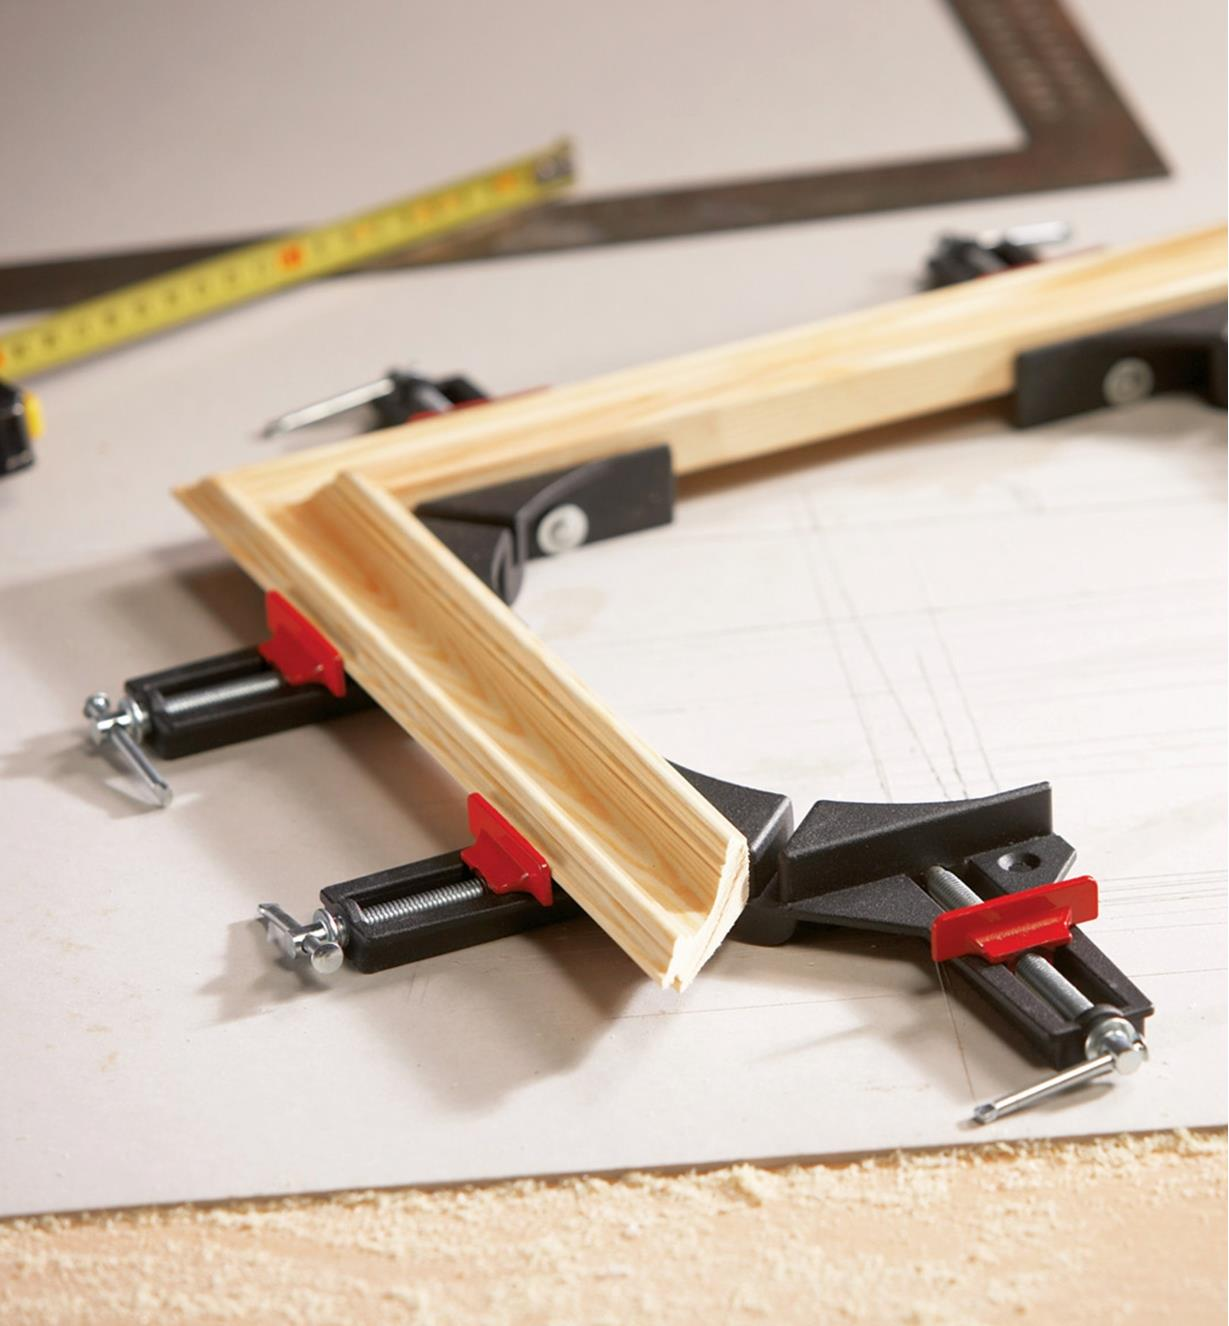 Bessey light-duty corner clamps being used to construct a picture frame